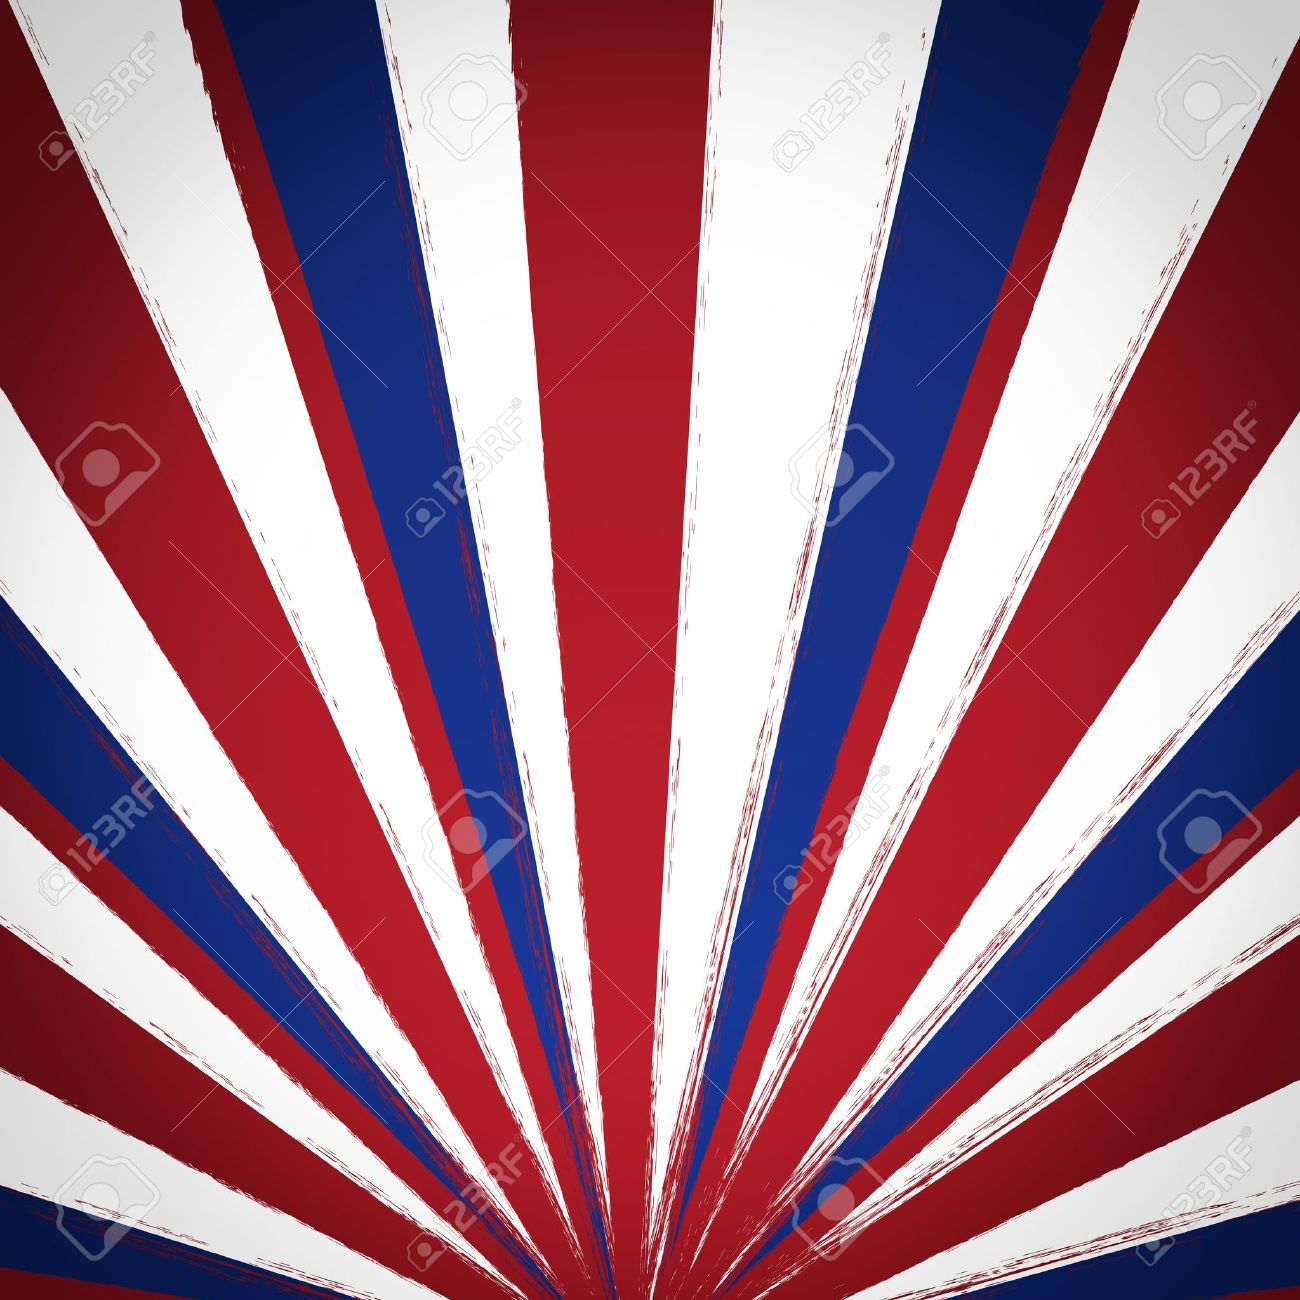 Red White And Blue Star Images, Stock Pictures, Royalty Free Red